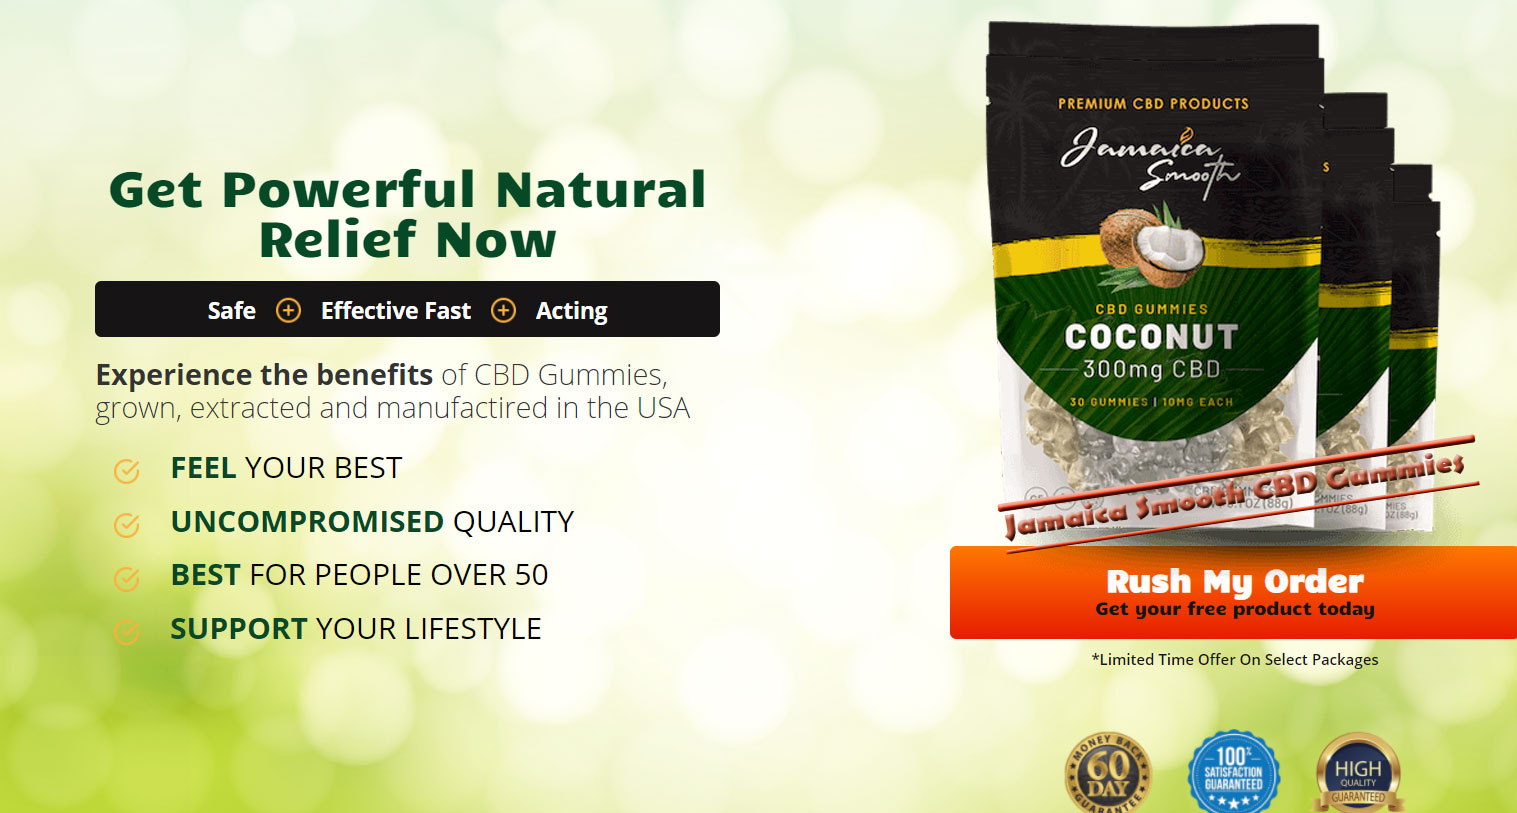 trial-87iovb8-Jamaica-Smooth-CBD-Gummies-footer